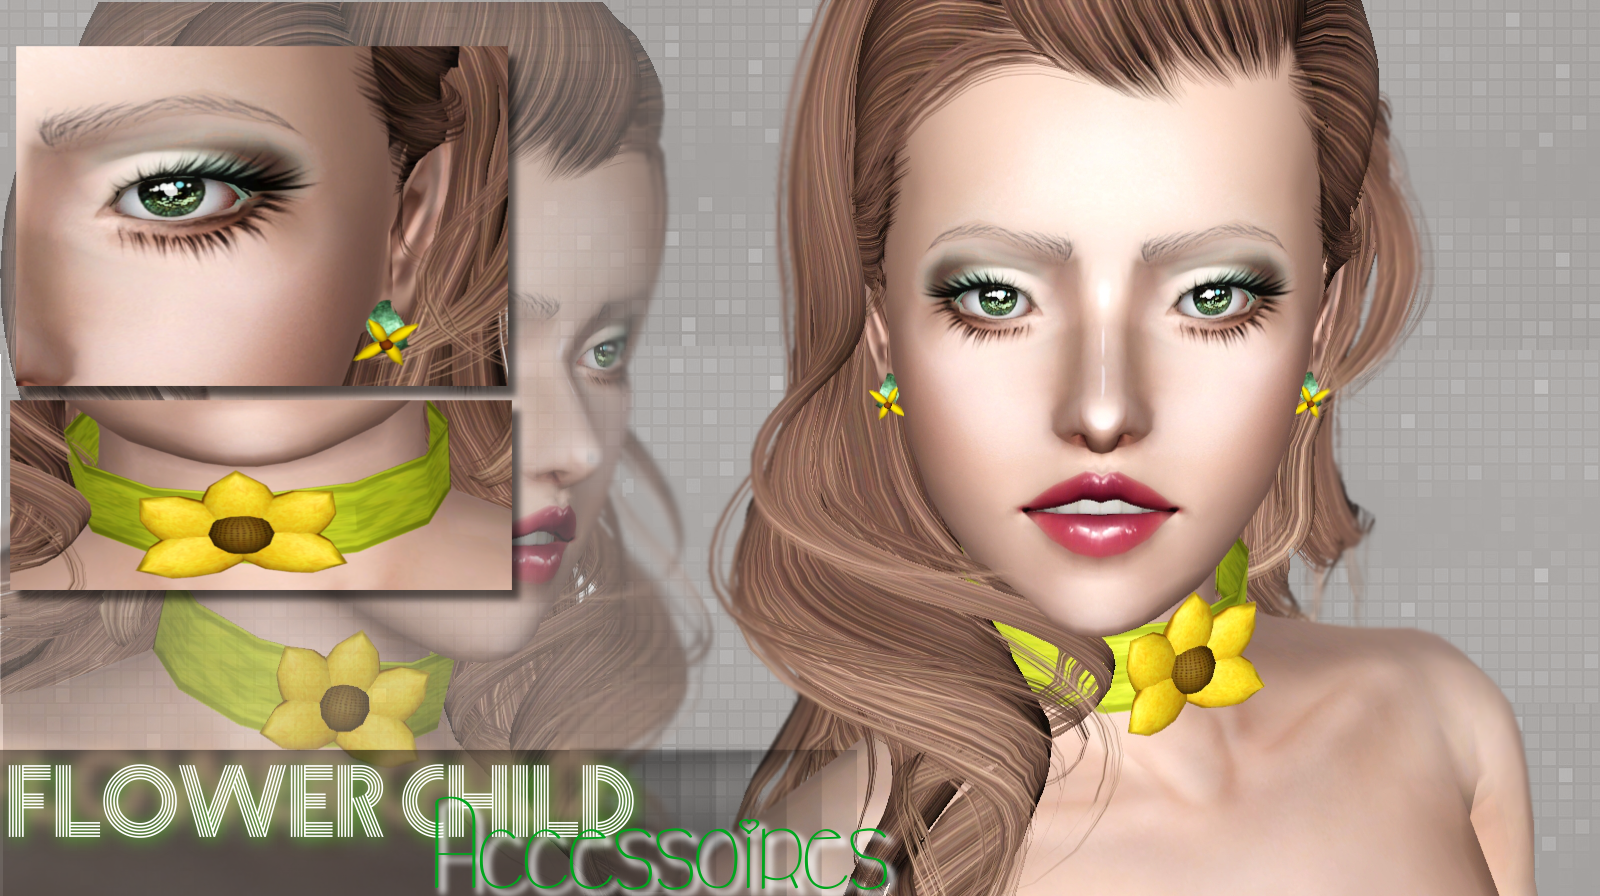 Flower Chold - an Accessory Set by WhiteCrow